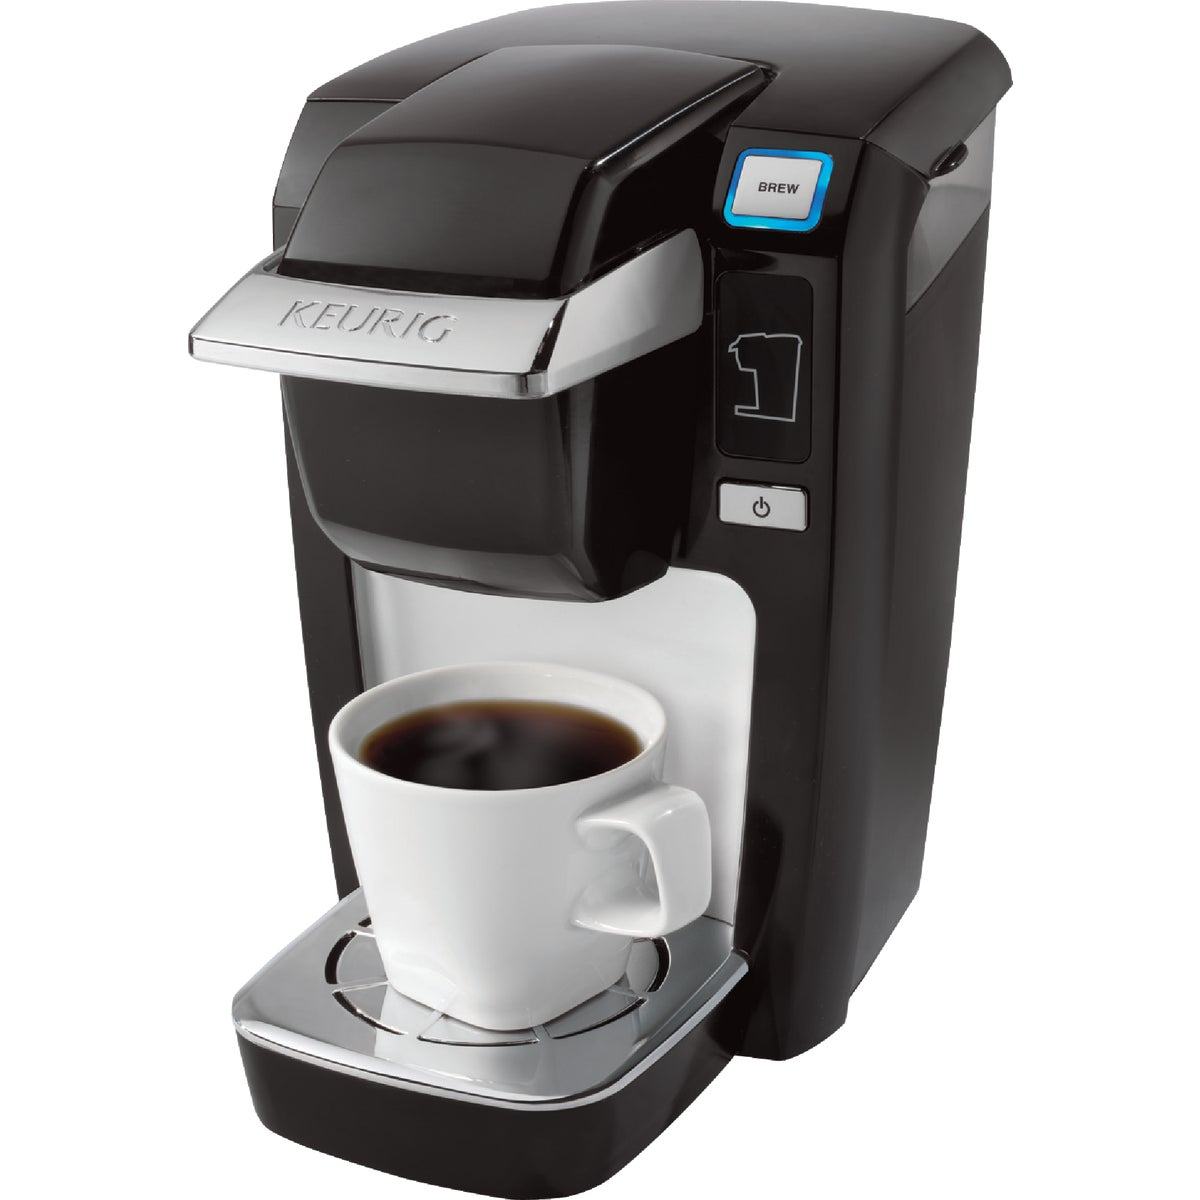 B31 BLACK COFFEE BREWER - 00314 by Keurig     M Block